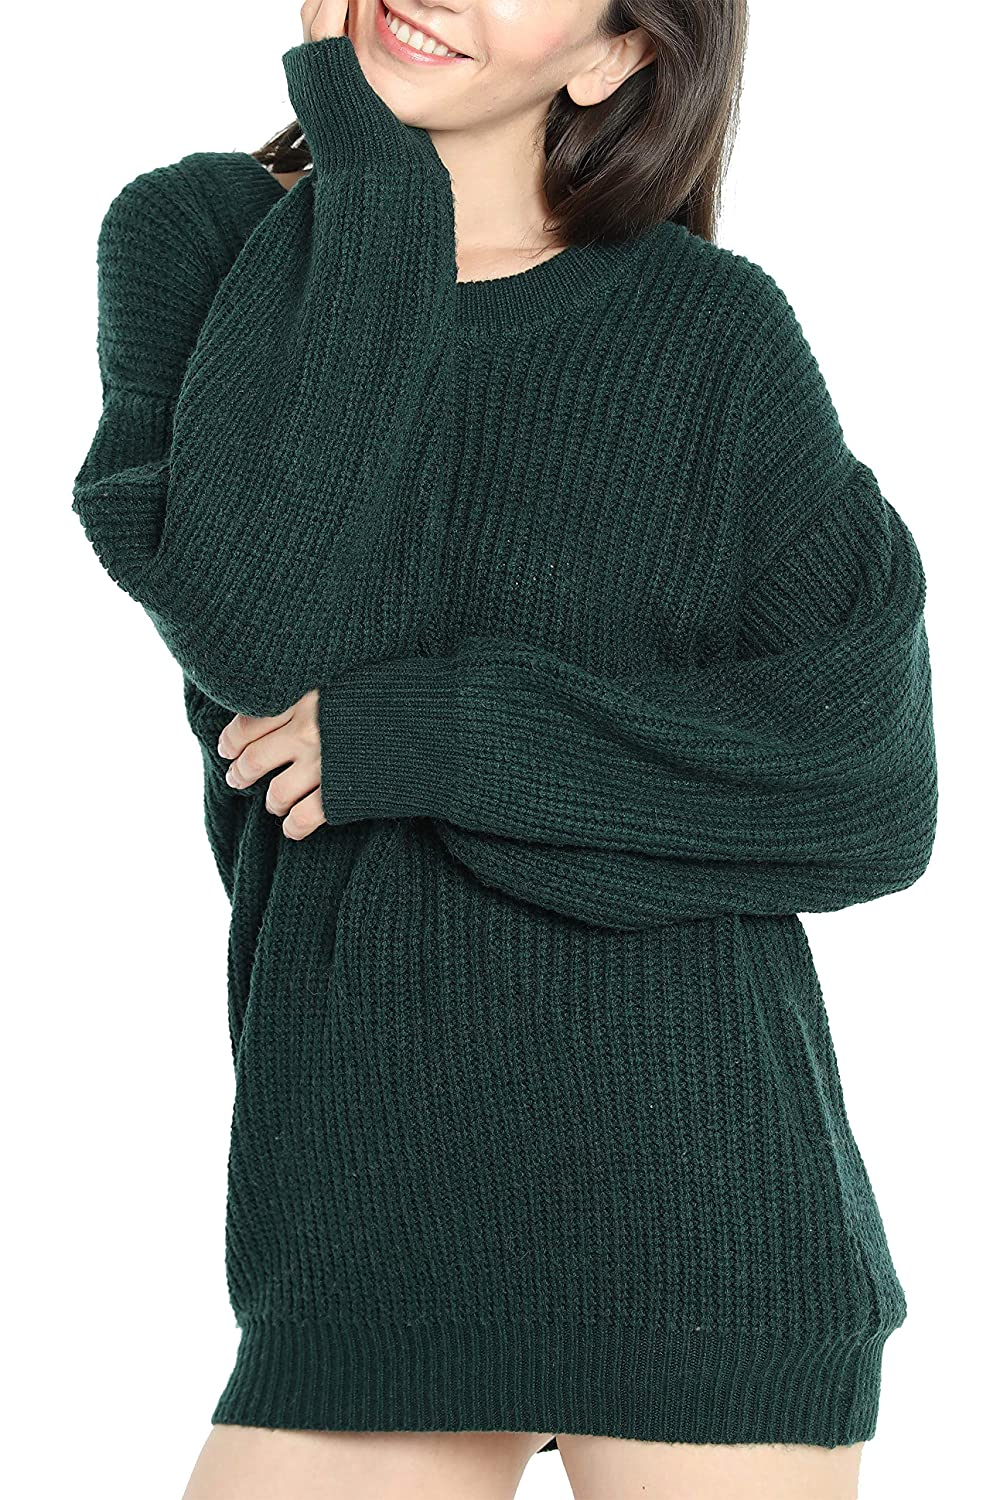 Liny Xin Womens Cashmere Oversized Loose Knitted Crew Neck Long Sleeve  Winter Warm Wool Pullover Long ... 136a6479d